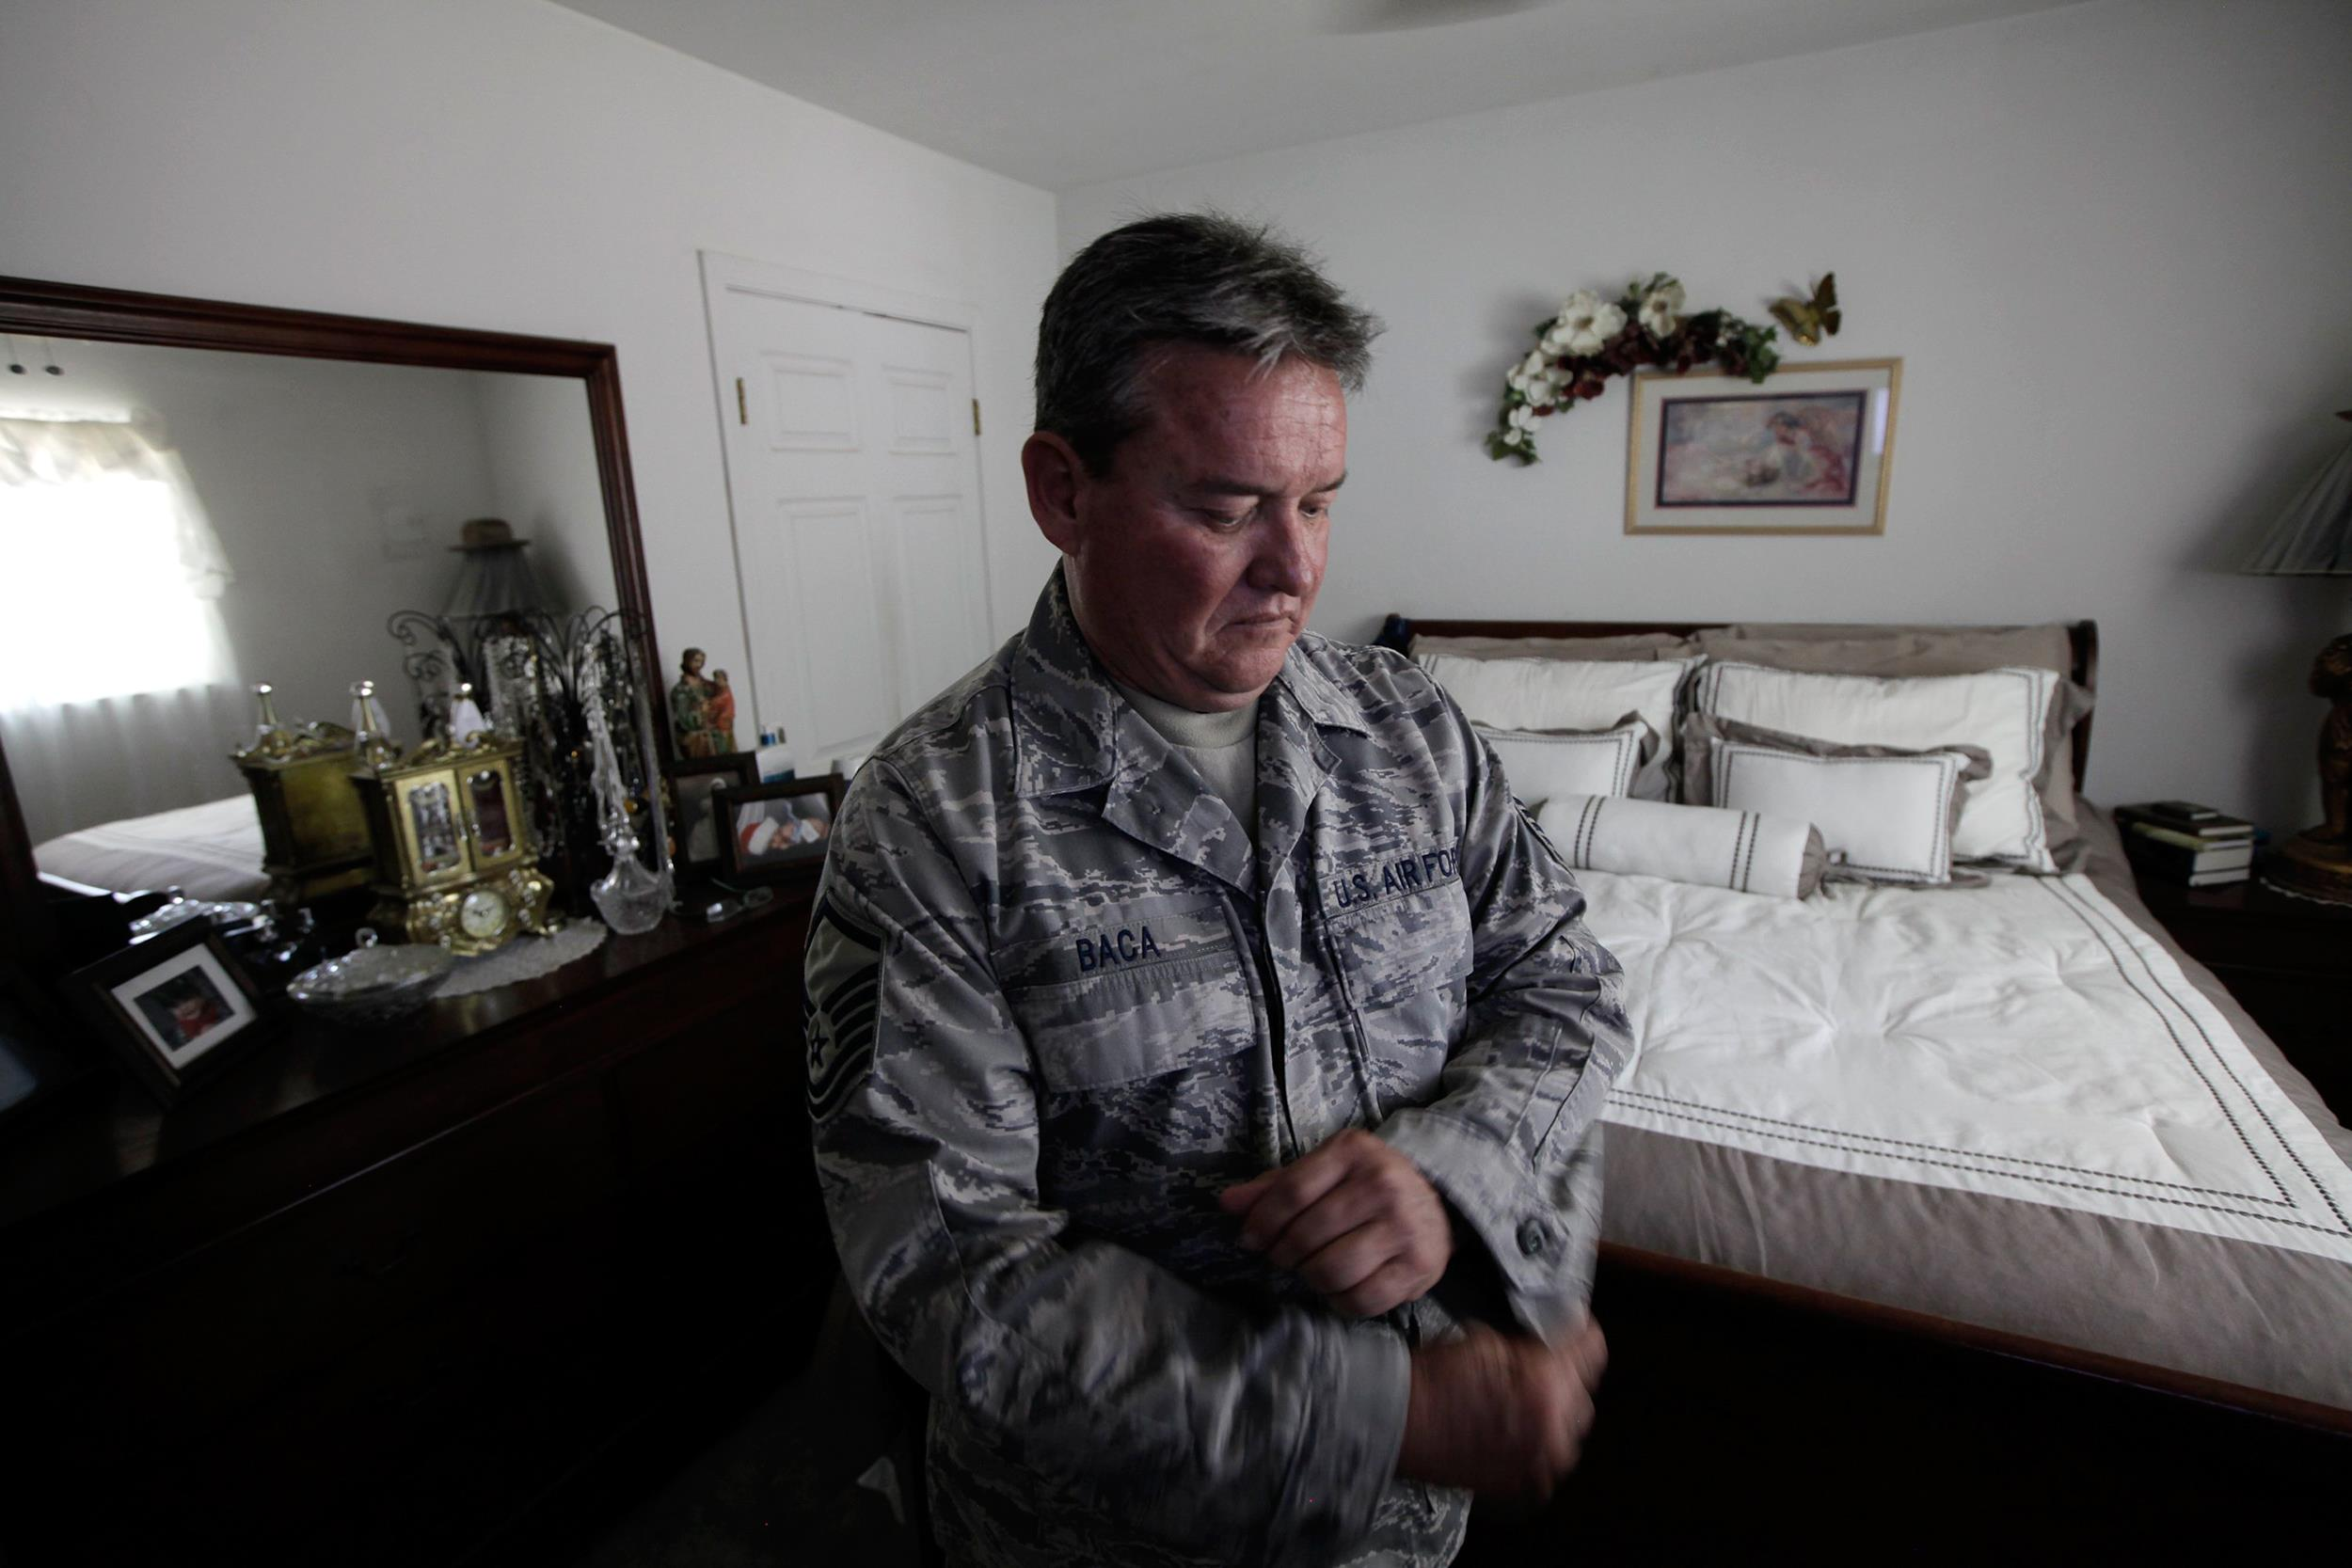 Master Sgt. Jessey Baca, who has constrictive bronchiolitis, adjusts his uniform at home on July 2, 2014